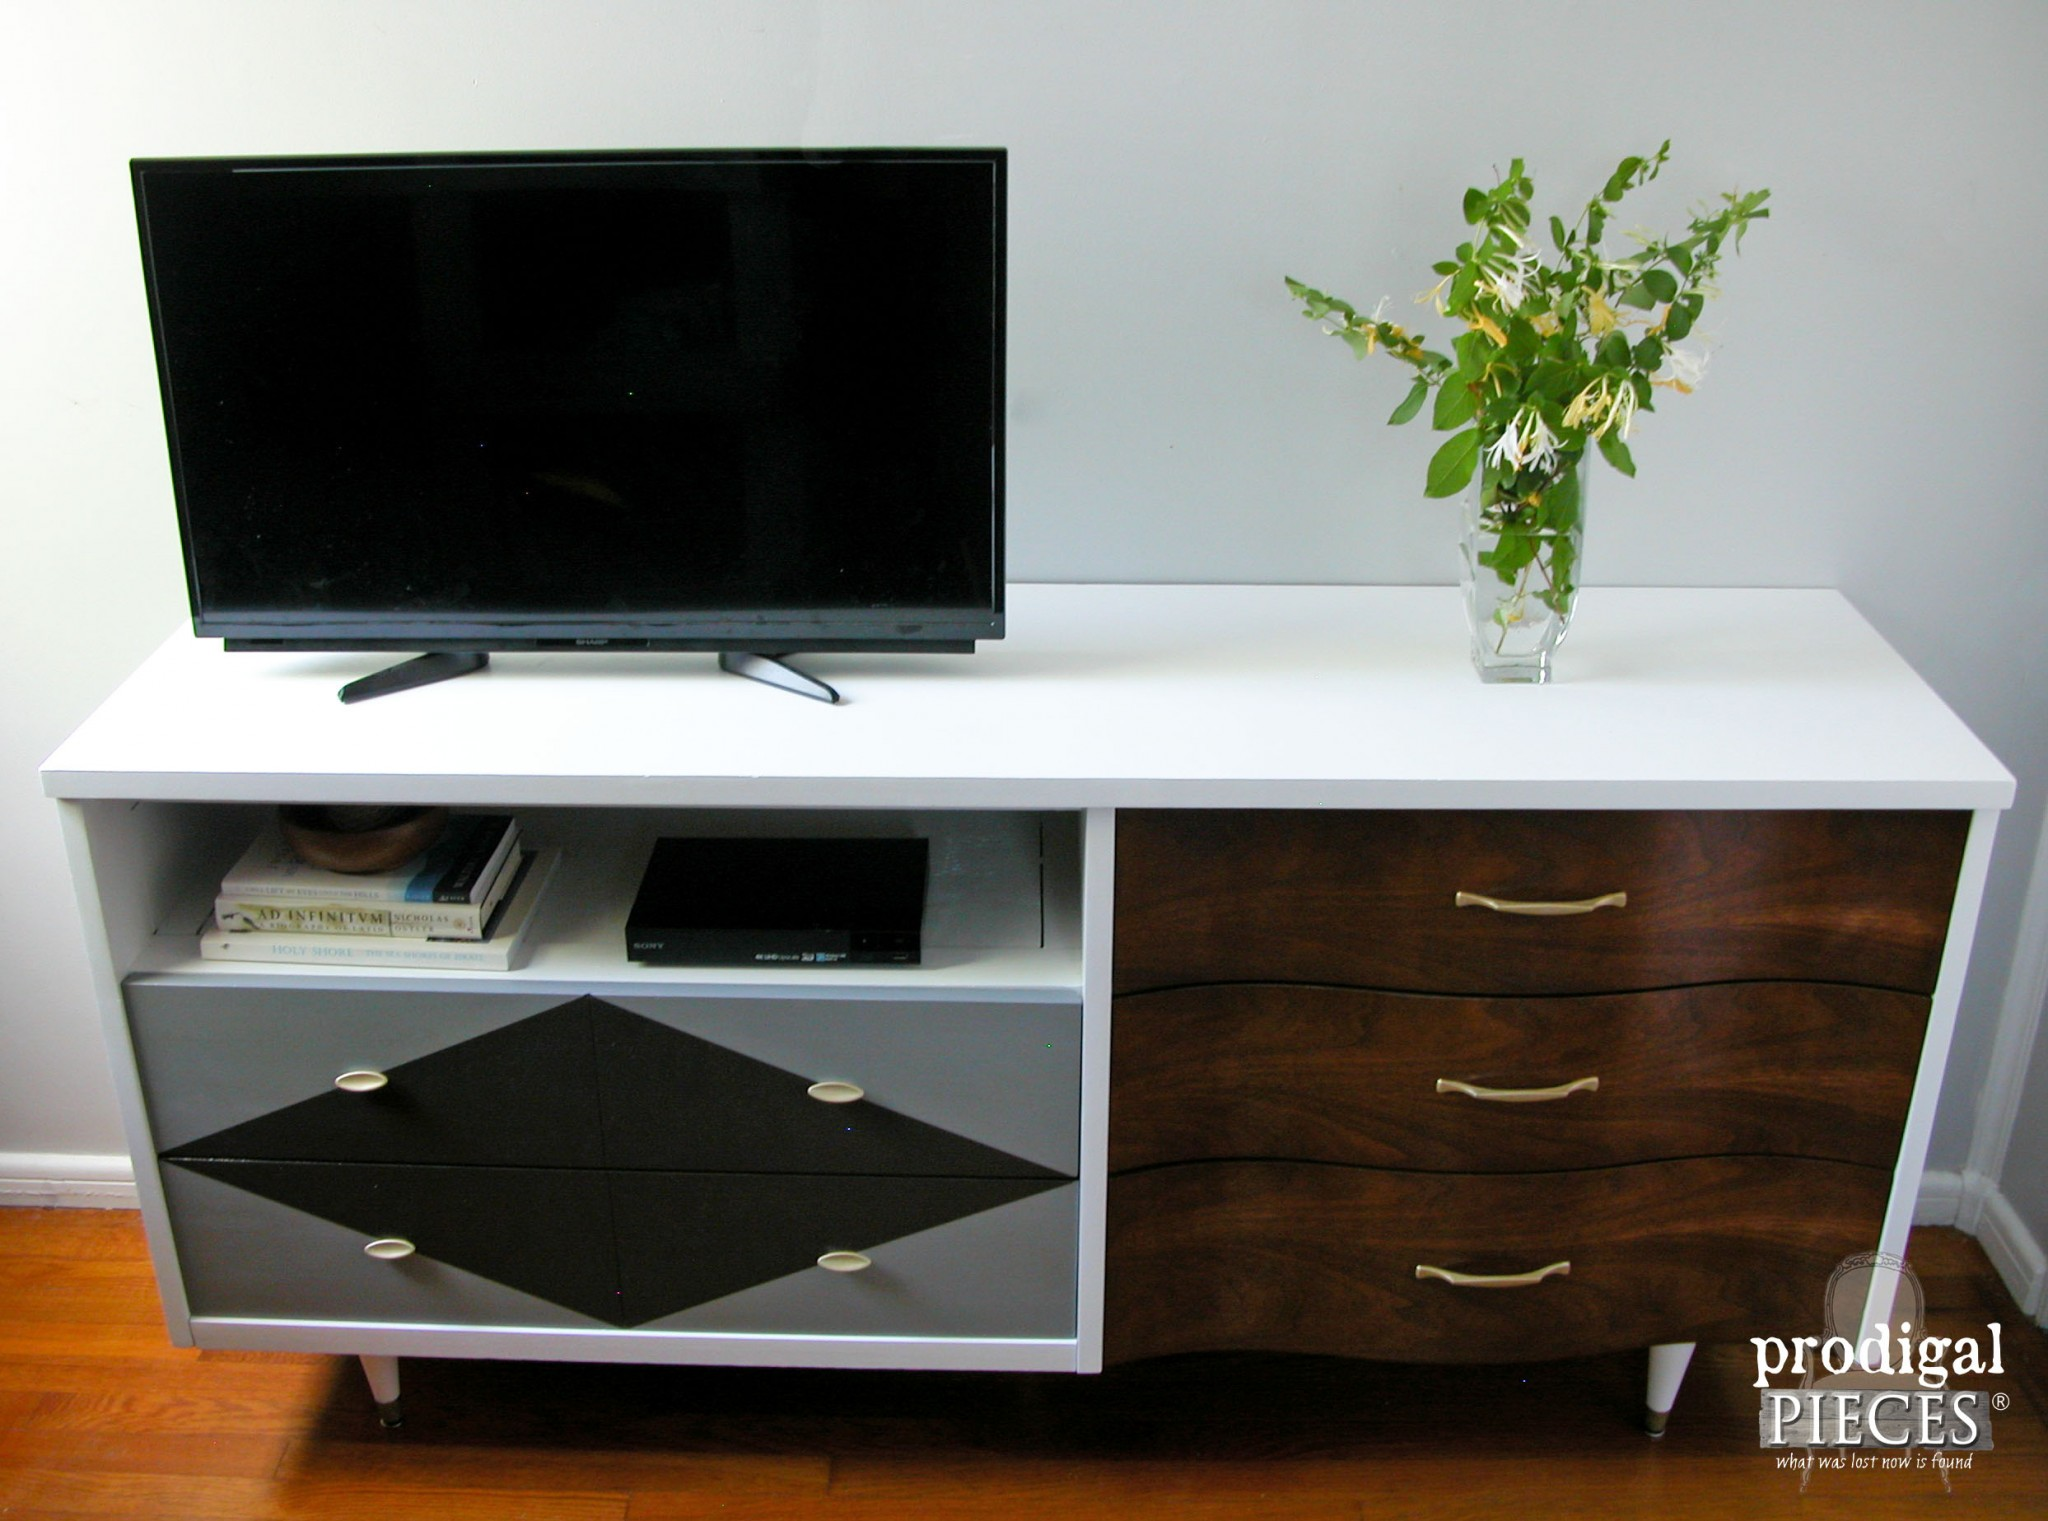 Modern Chic Mid Century Console by Prodigal Pieces | www.prodigalpieces.com